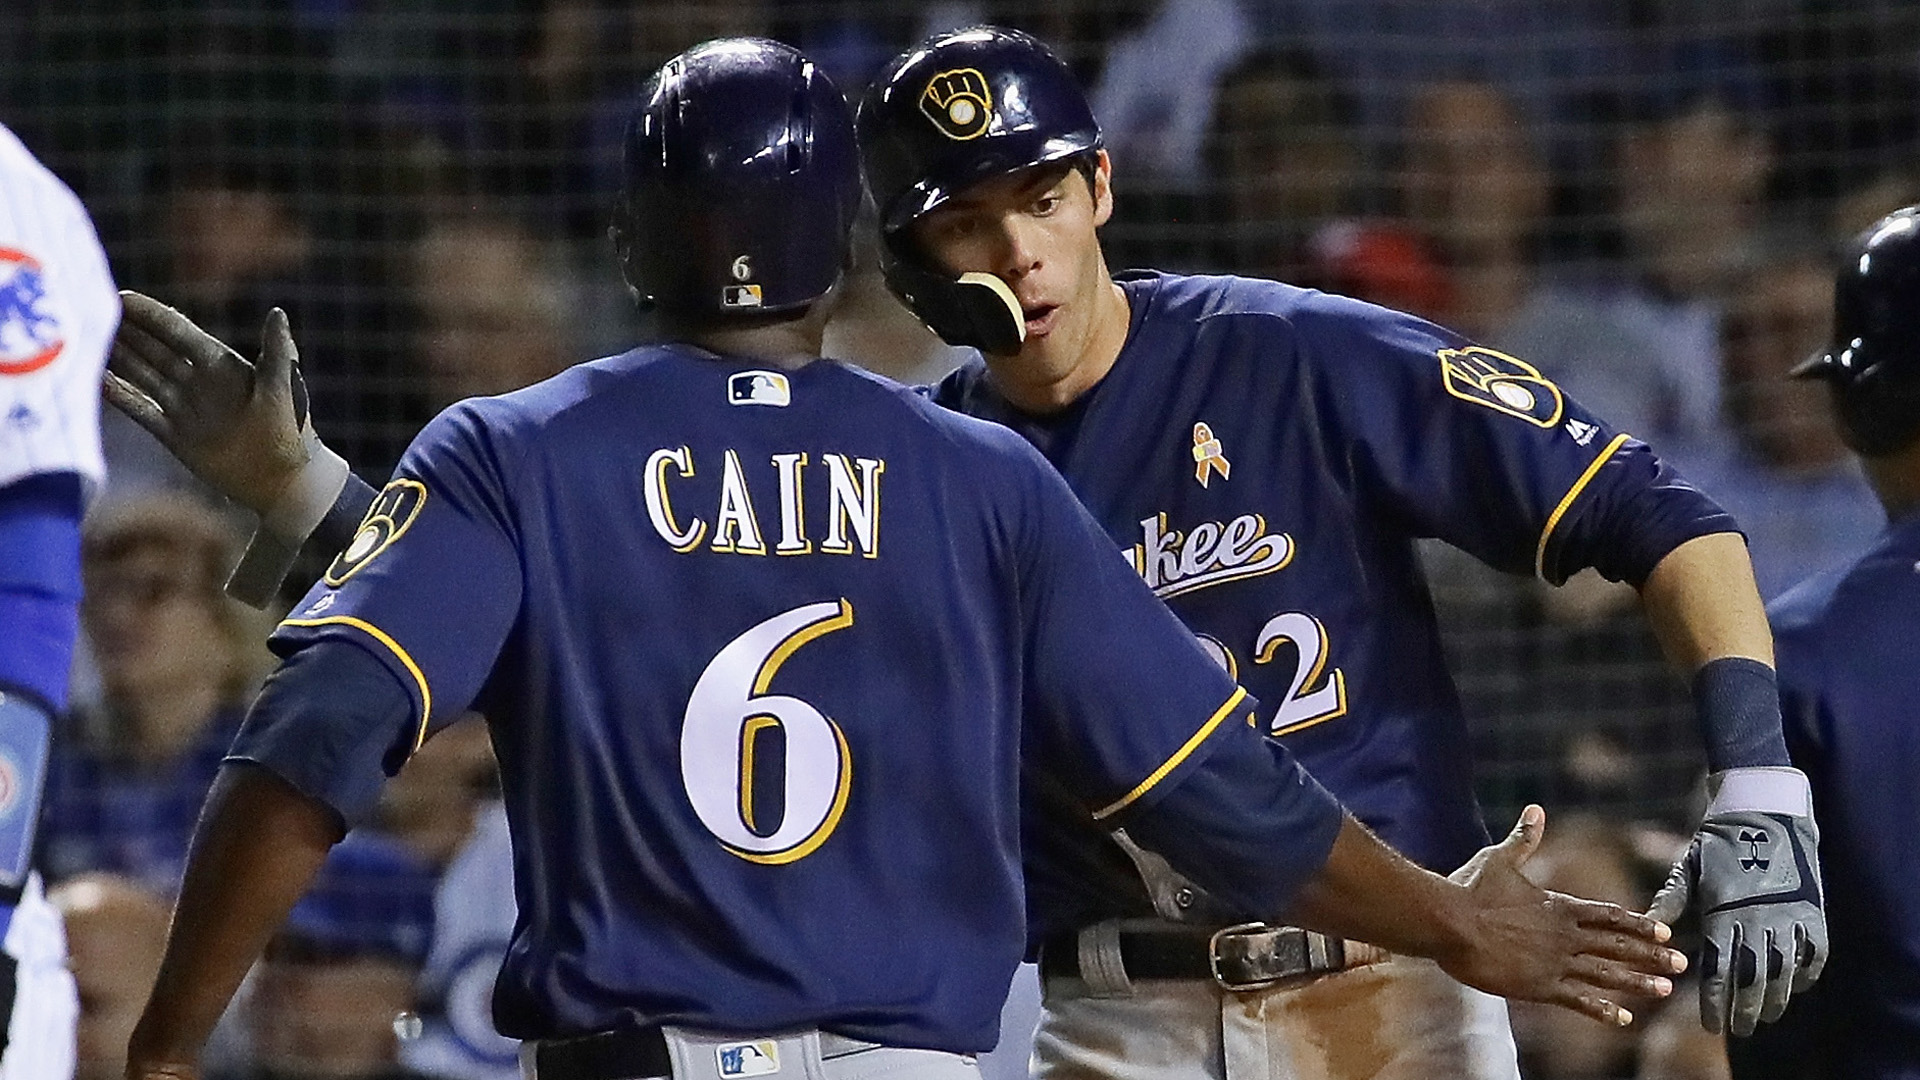 MLB wrap: Brewers cut Cubs' lead to 1 game; Rockies keep NL West lead with dramatic walkoff